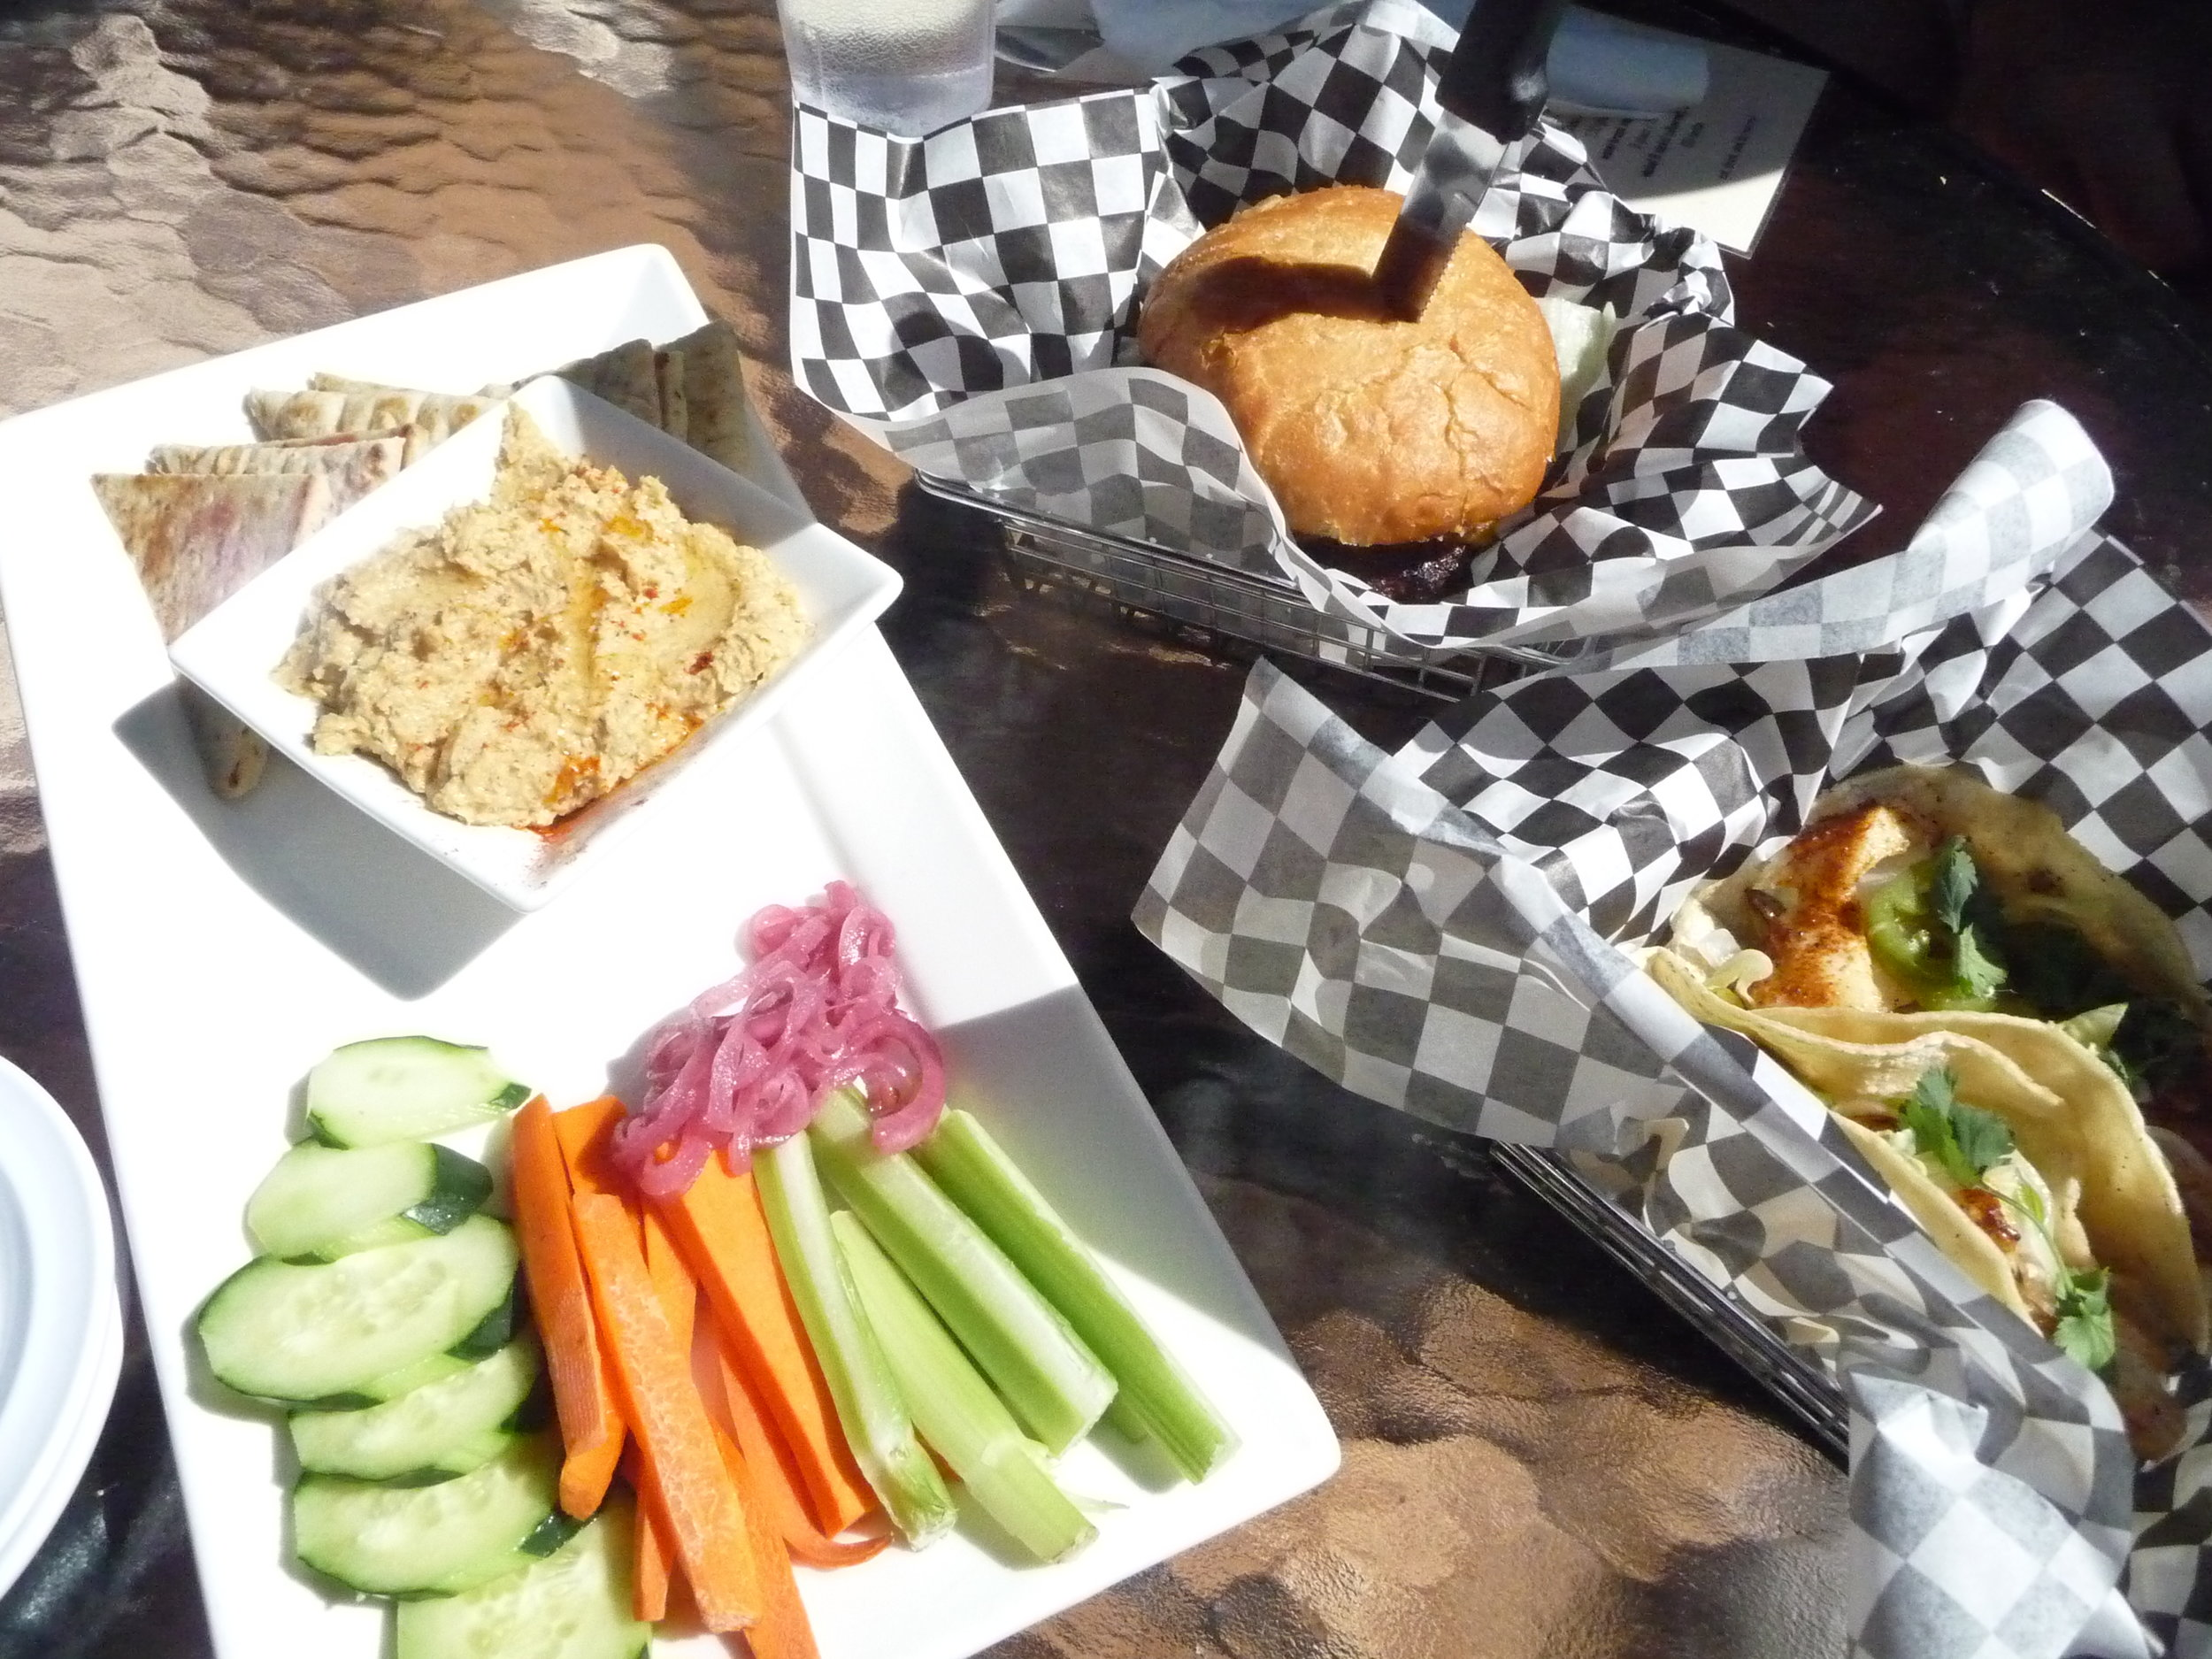 Appetizer offerings at Farrar's Bistro-hummus platter, red snapper fish tacos and a black & bleu burger